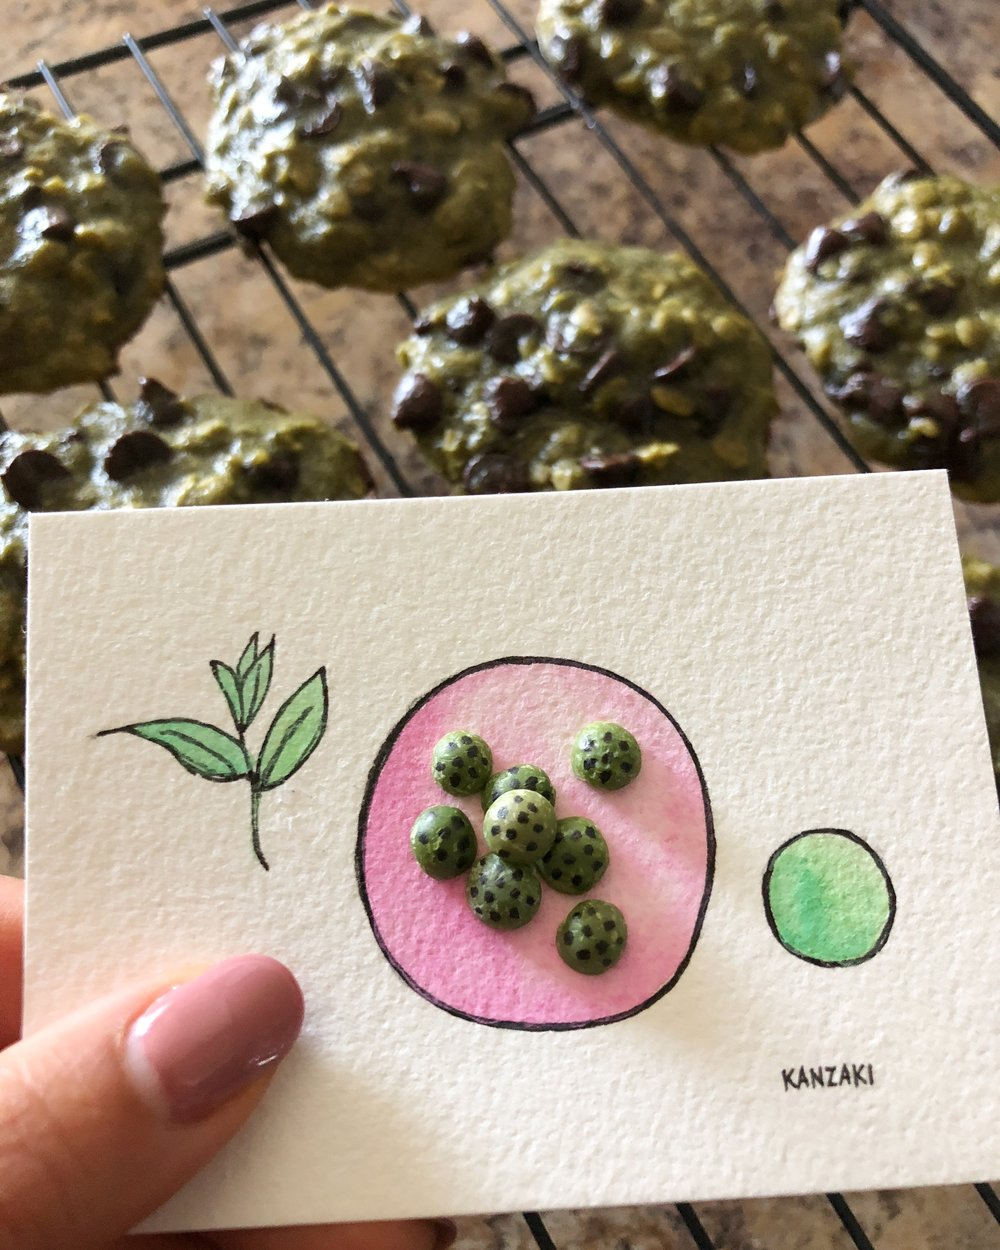 Green split lentils were the matcha-chocolate chip cookie inspiration for today's #the100dayproject. #day28of100 #100daysofTheKanzakiMethodFood